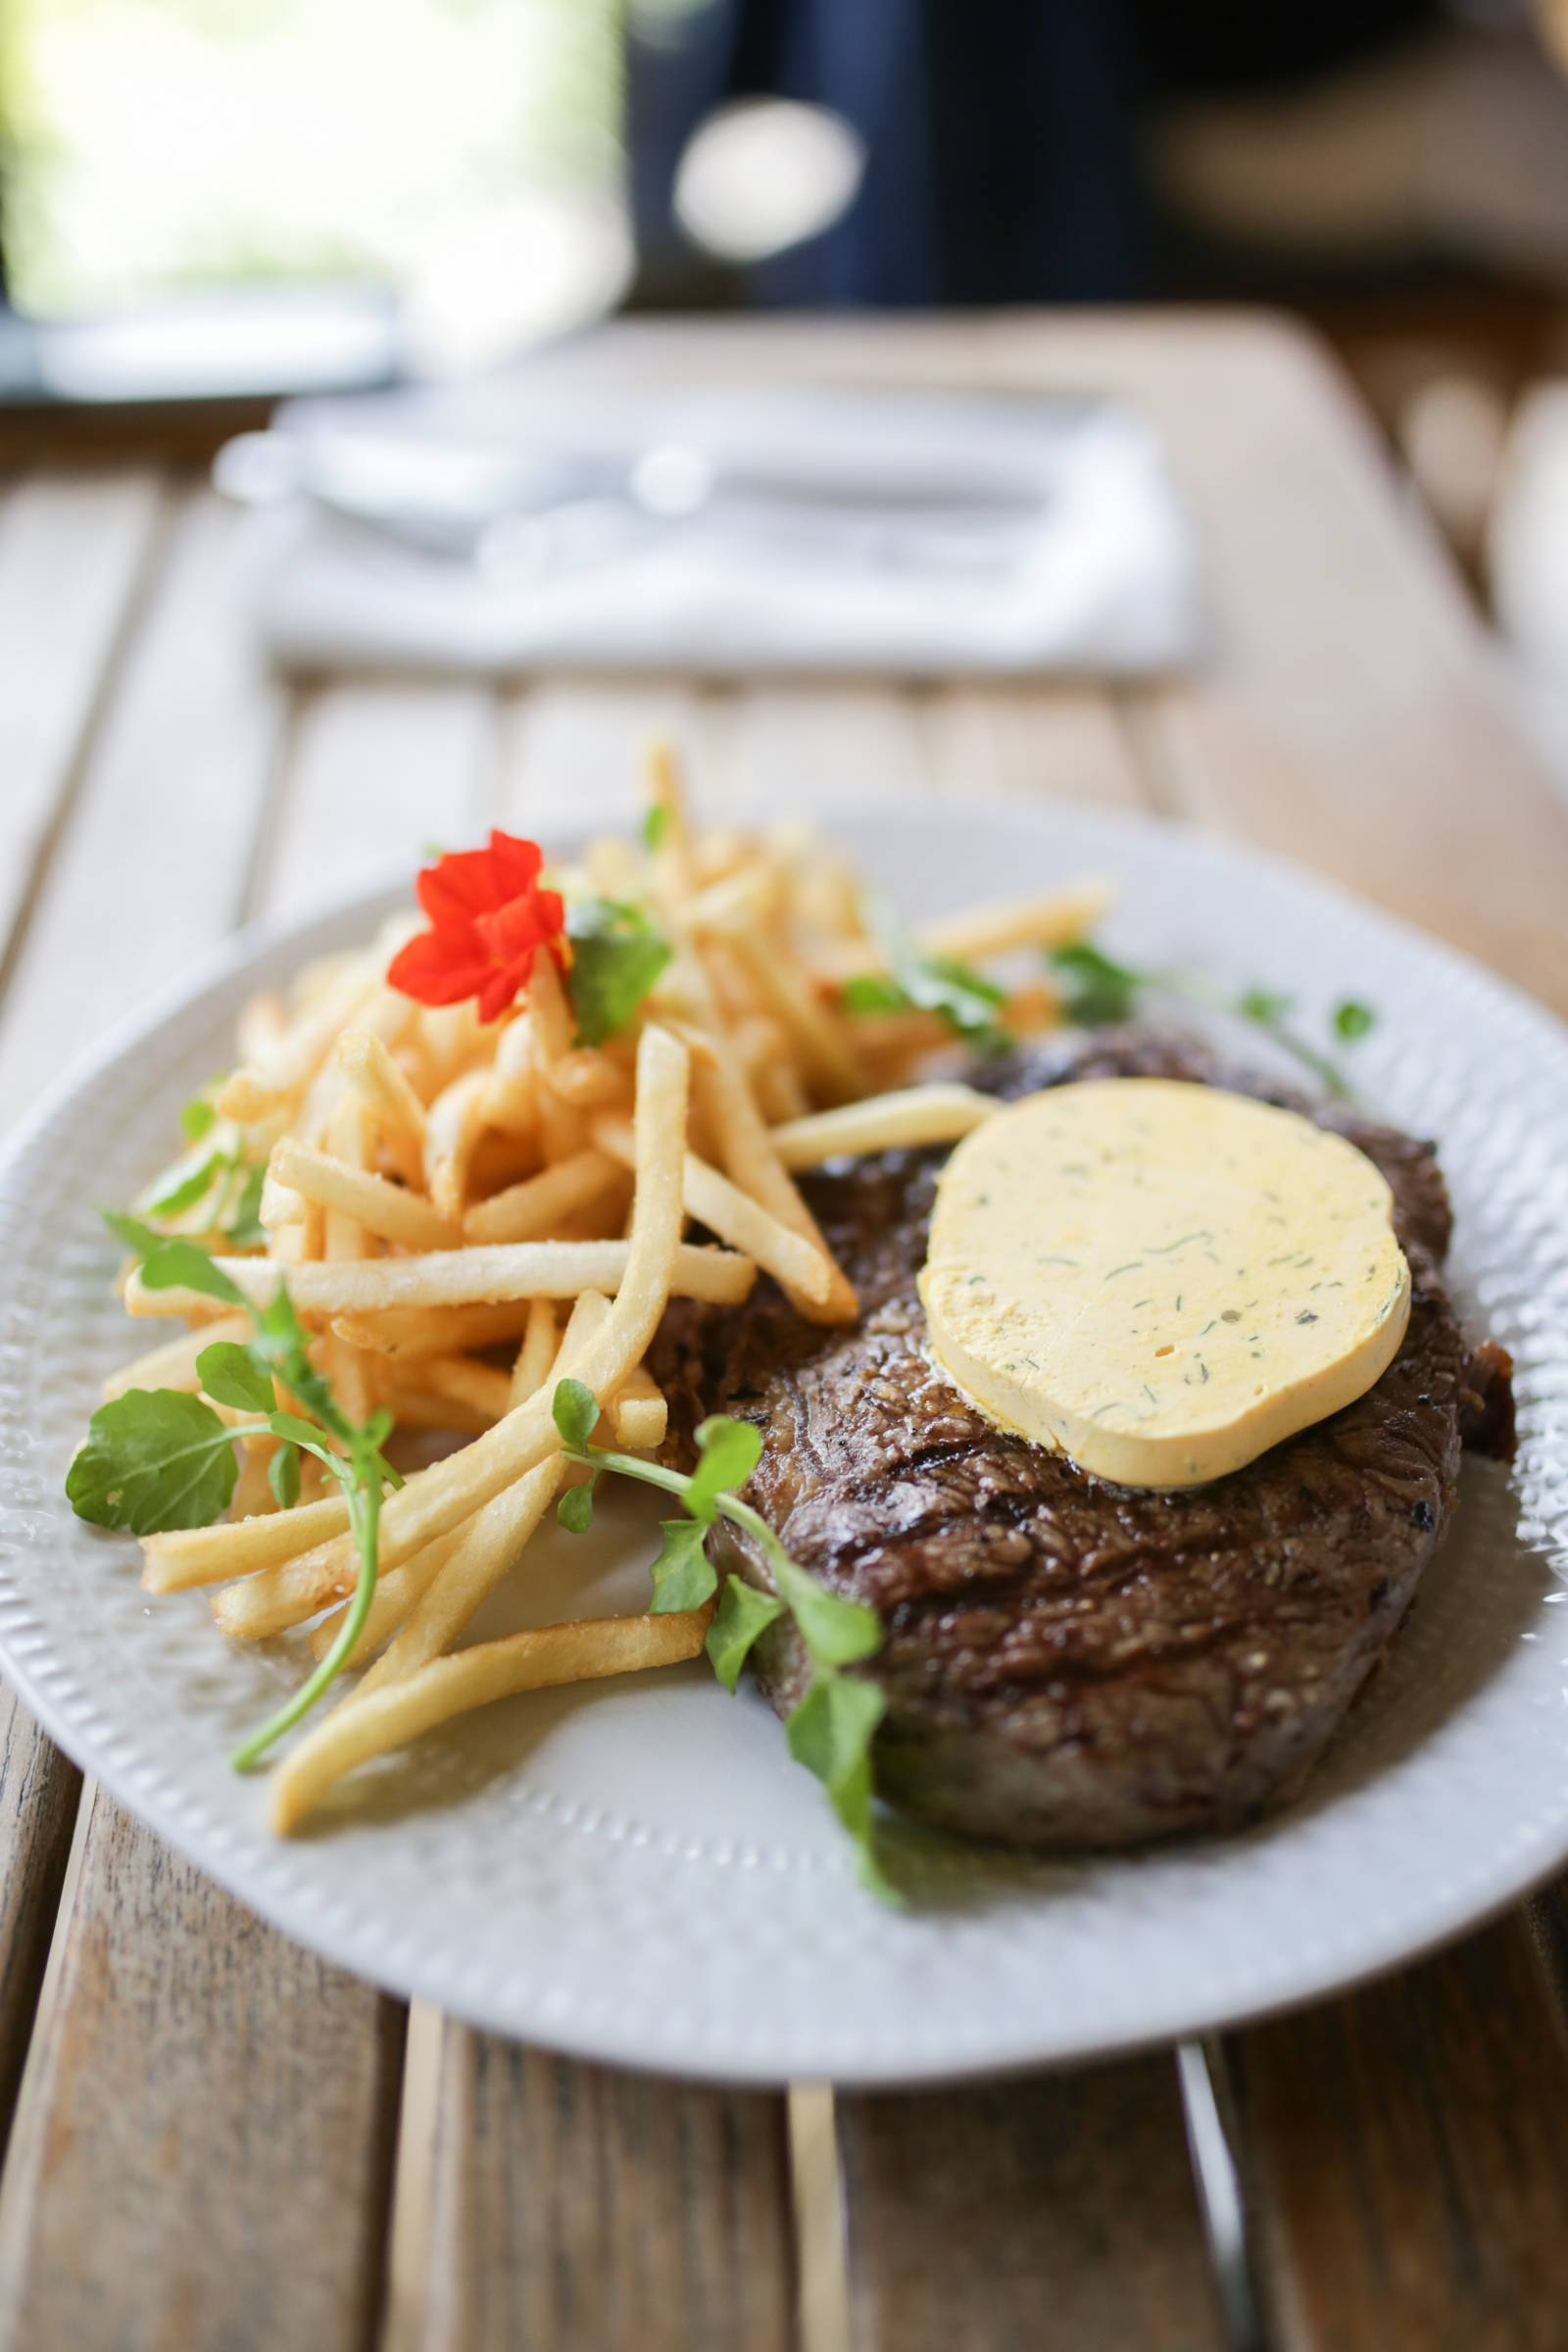 Steak with cafe de paris butter and french fries at Centennial Vineyards, Bowral